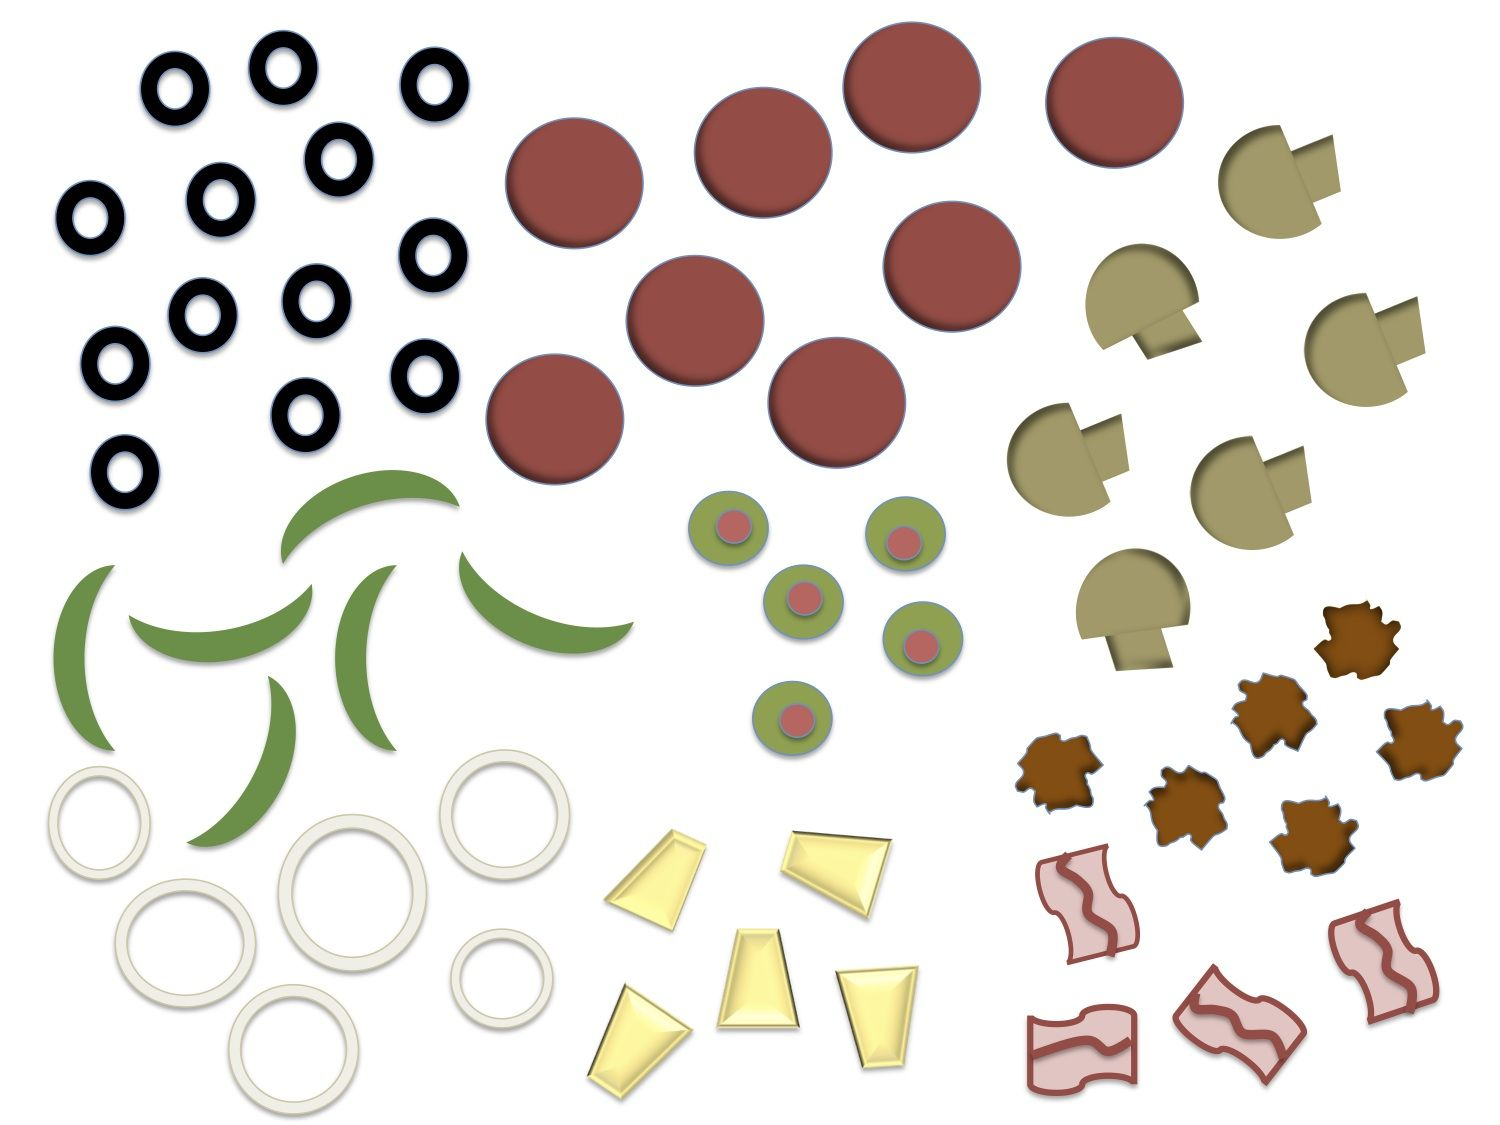 printable pizza toppings clipart free clipart [ 1500 x 1125 Pixel ]